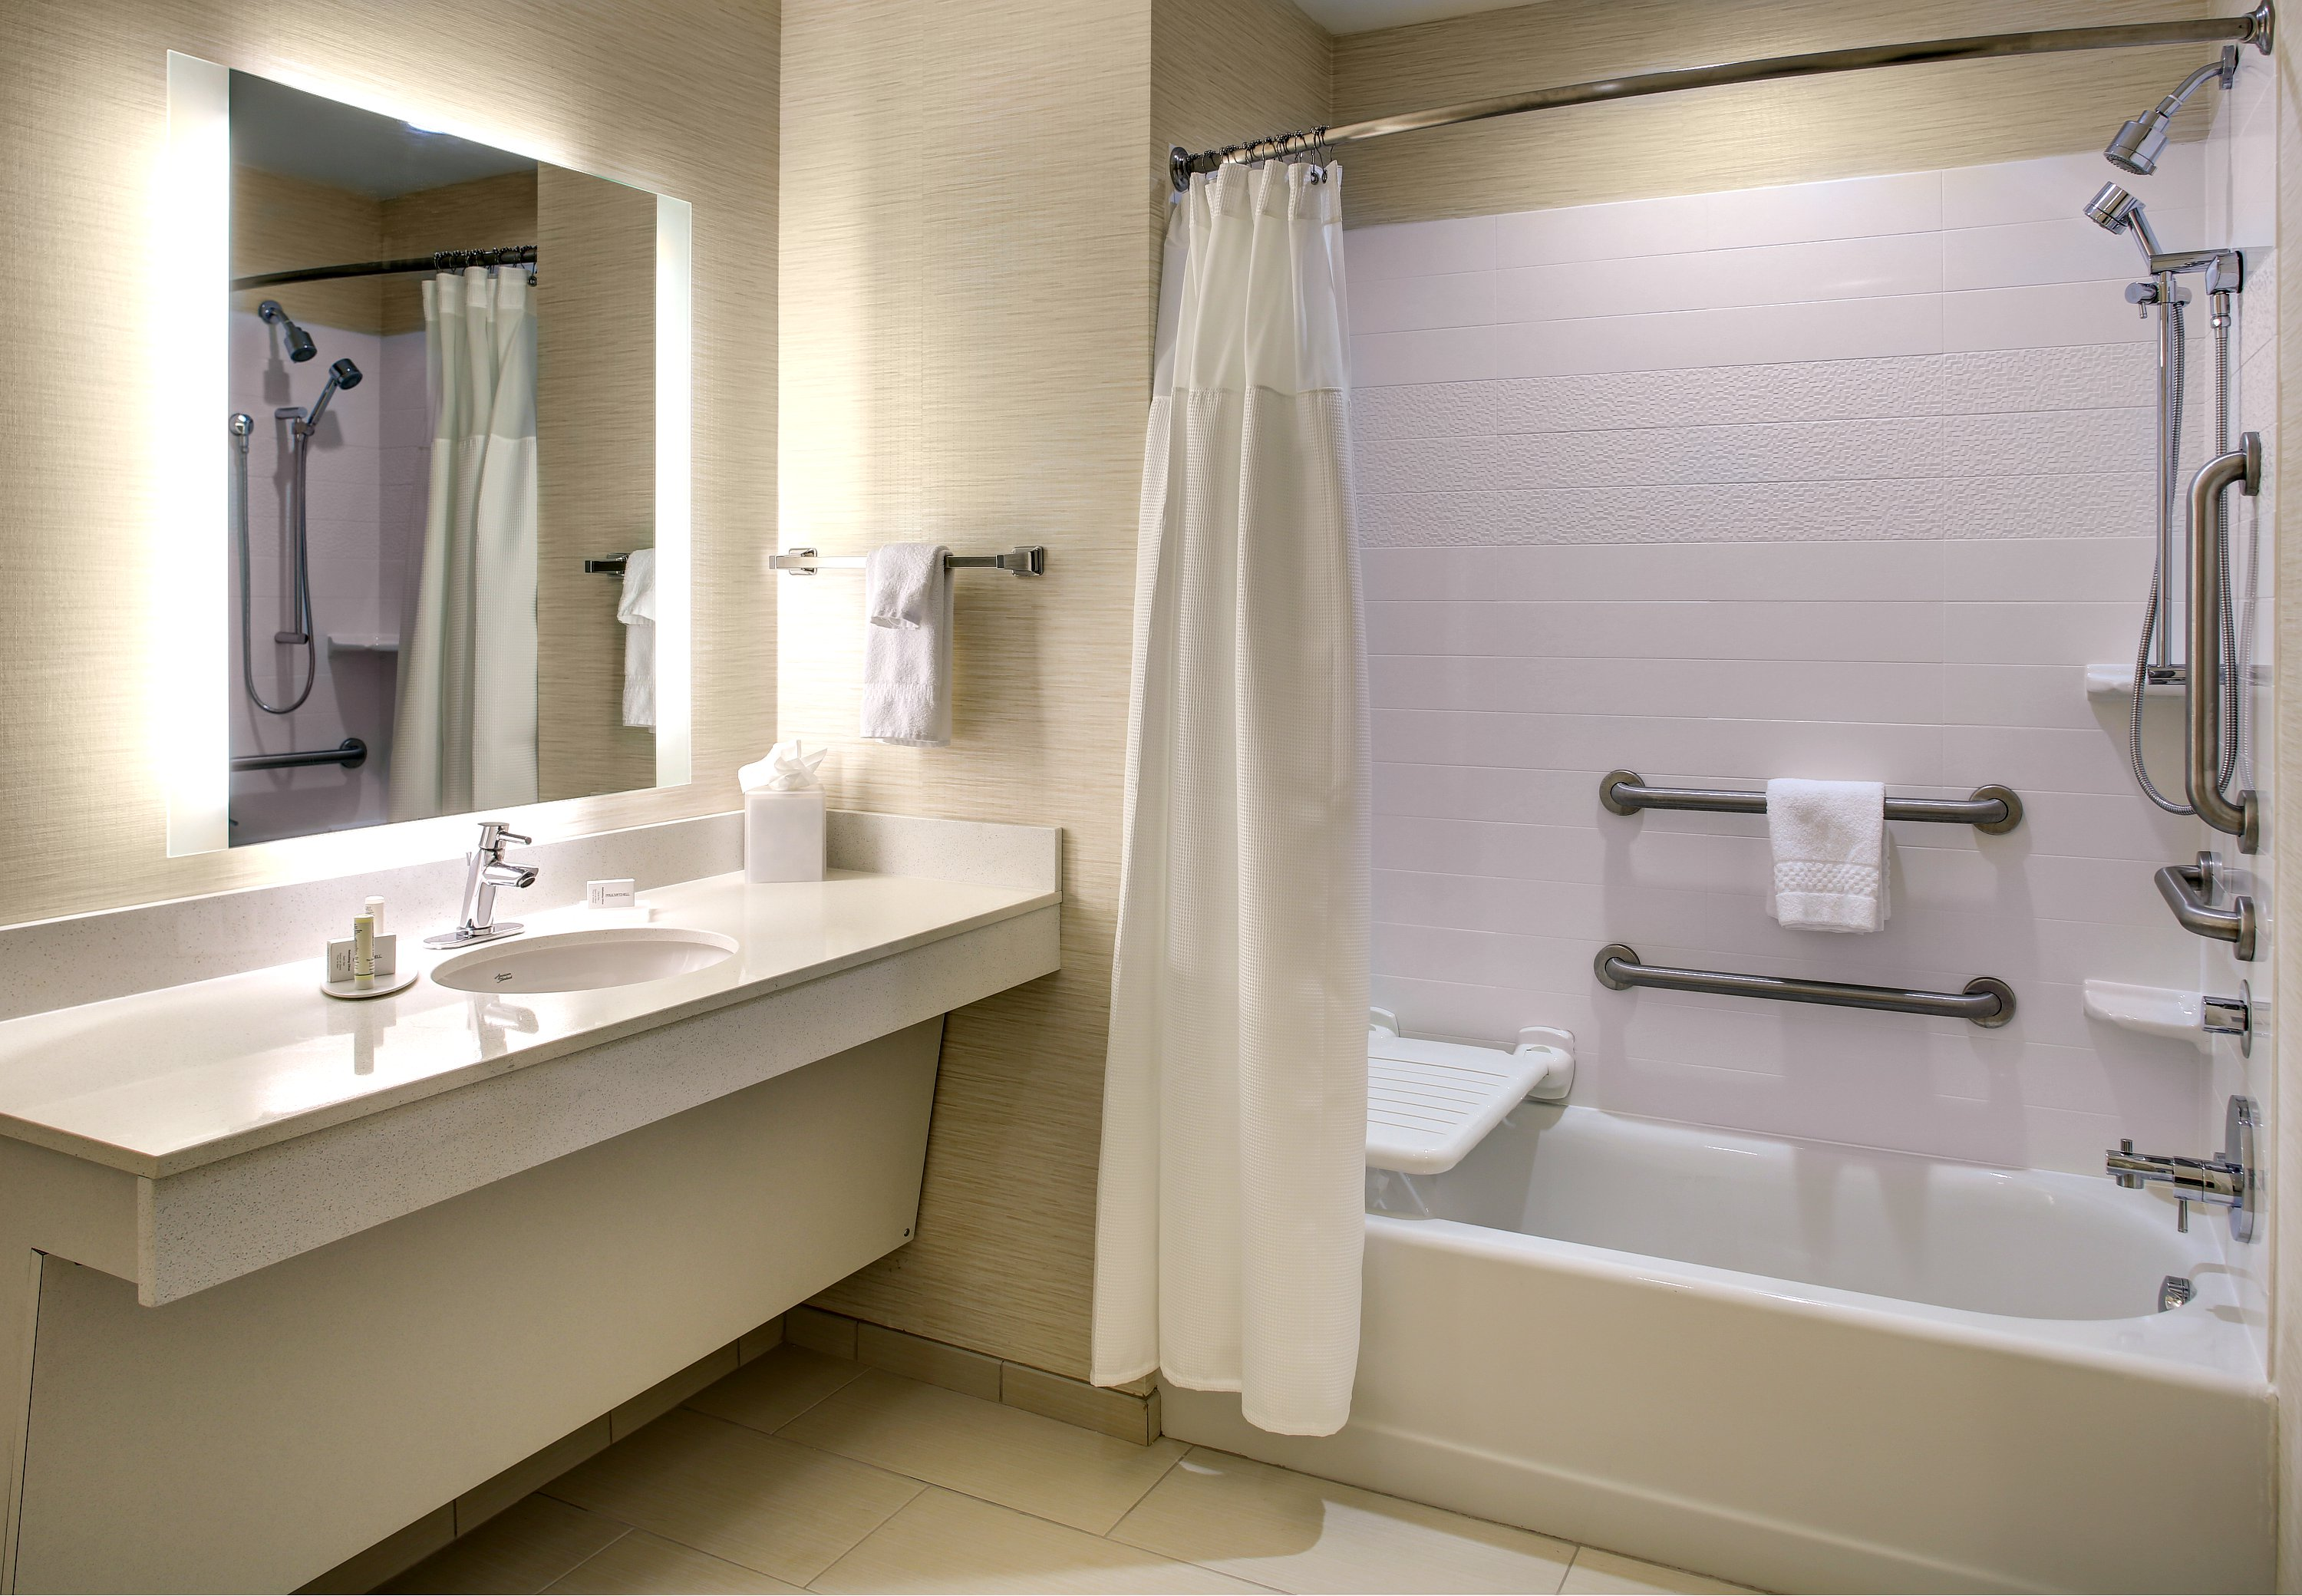 Fairfield Inn & Suites by Marriott Atlanta Stockbridge image 6